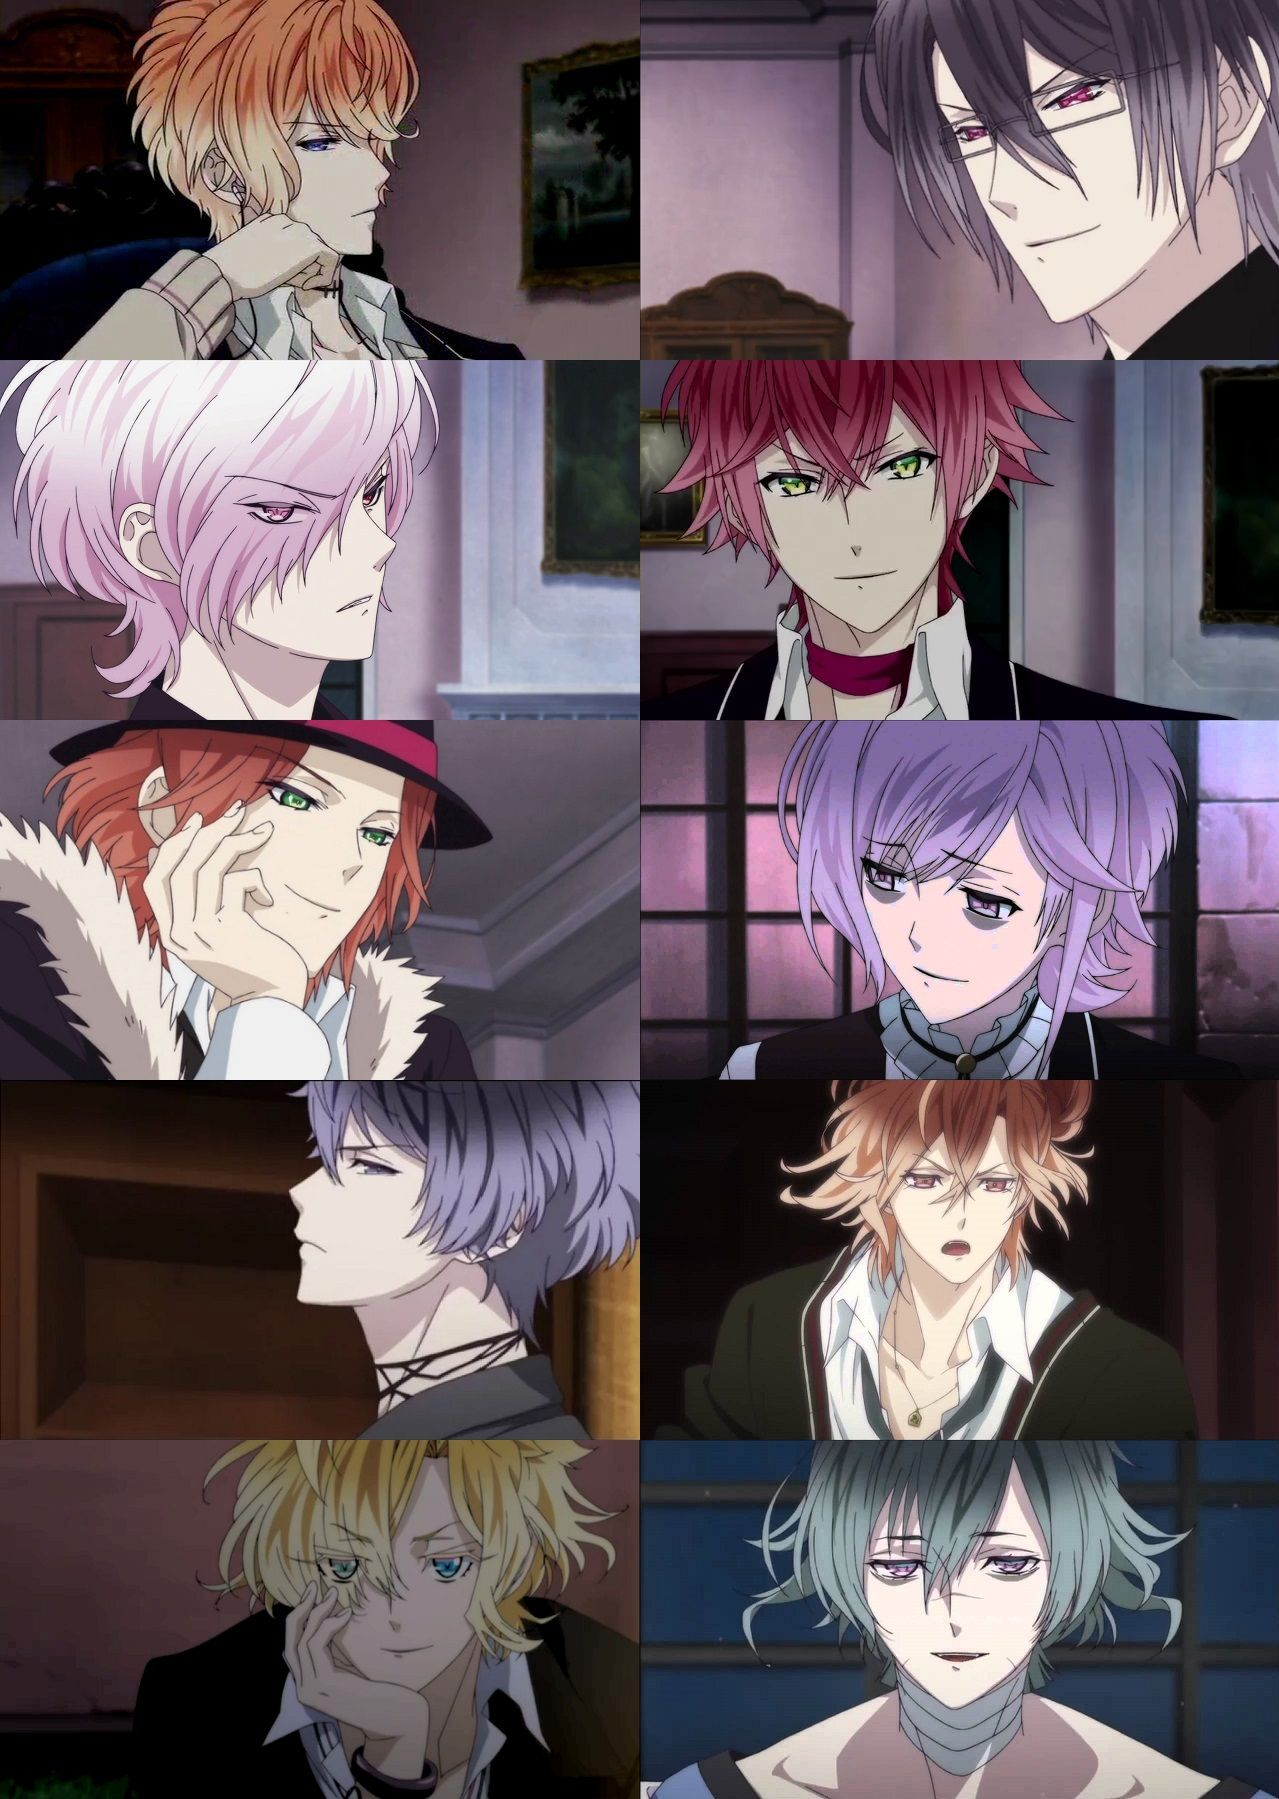 I'm not fan of this anime but... whatever! D Anime/game